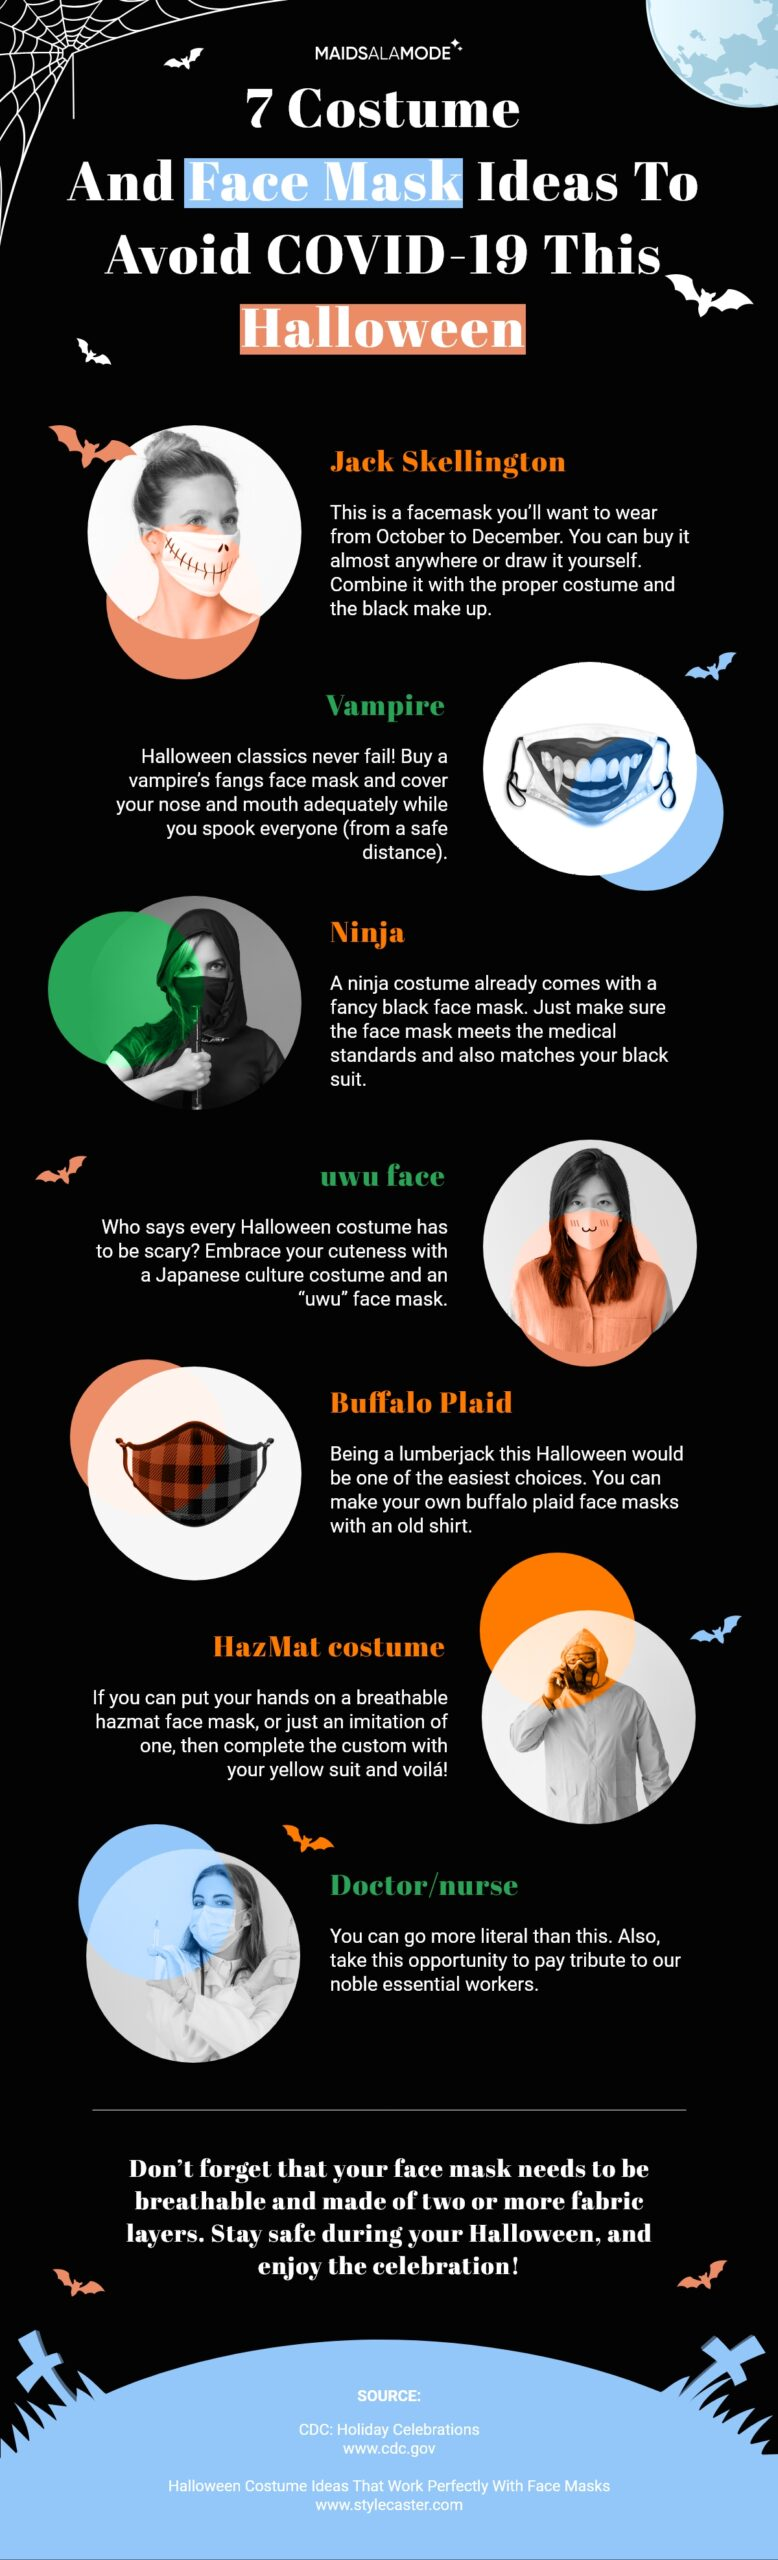 7 Costume And Face Mask Ideas To Avoid COVID-19 This Halloween